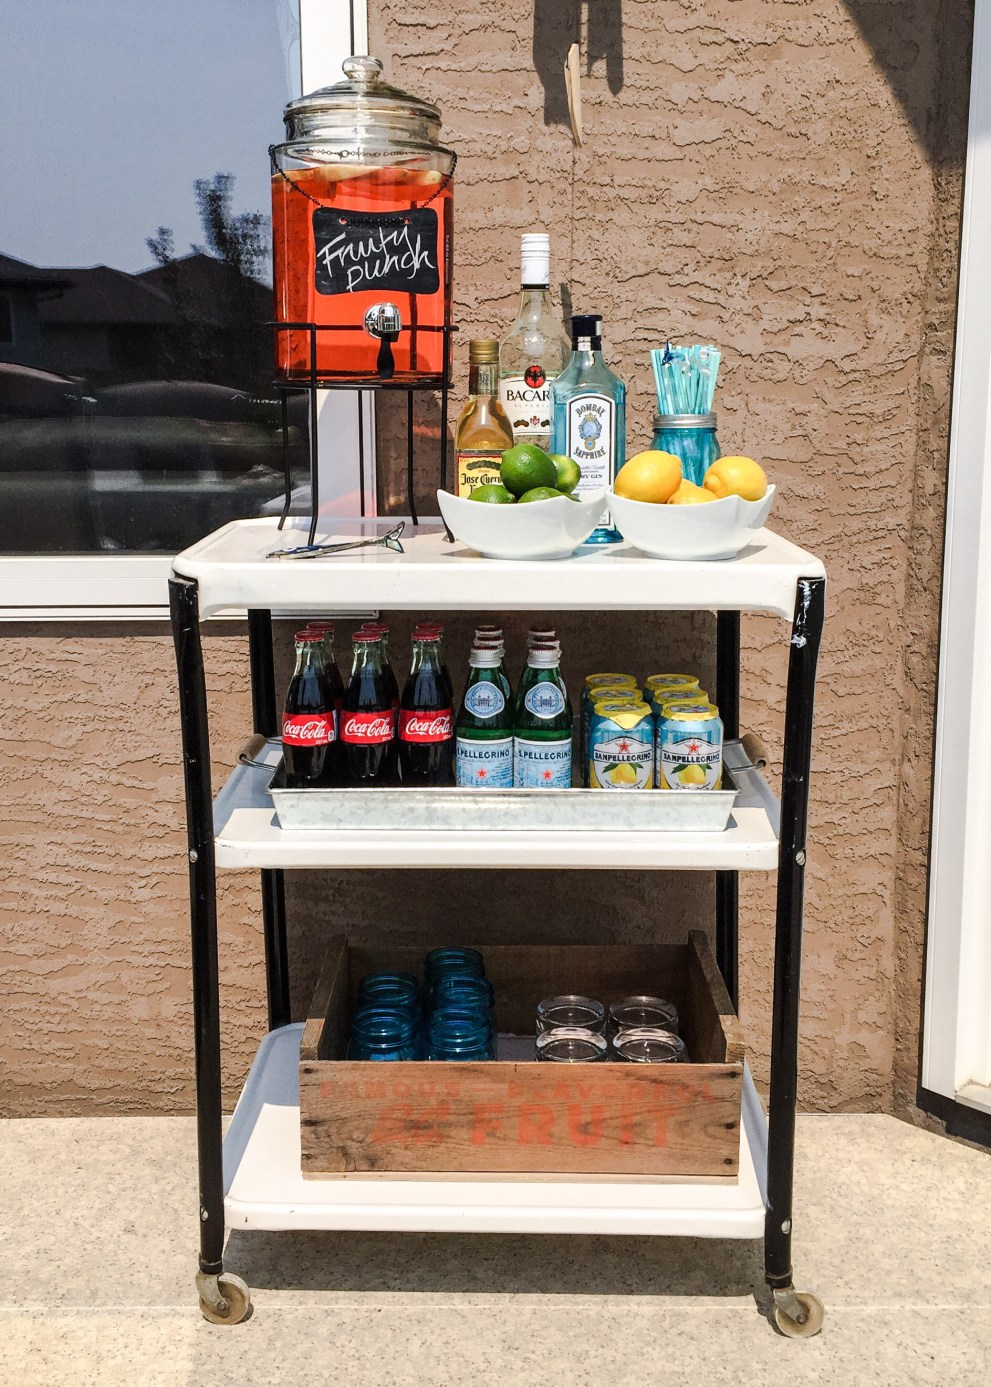 The many different ways to style a bar cart, bar cart, entertaining with bar carts, non alcoholic bar cart styling, bar cart inspirations, how to style a bar cart